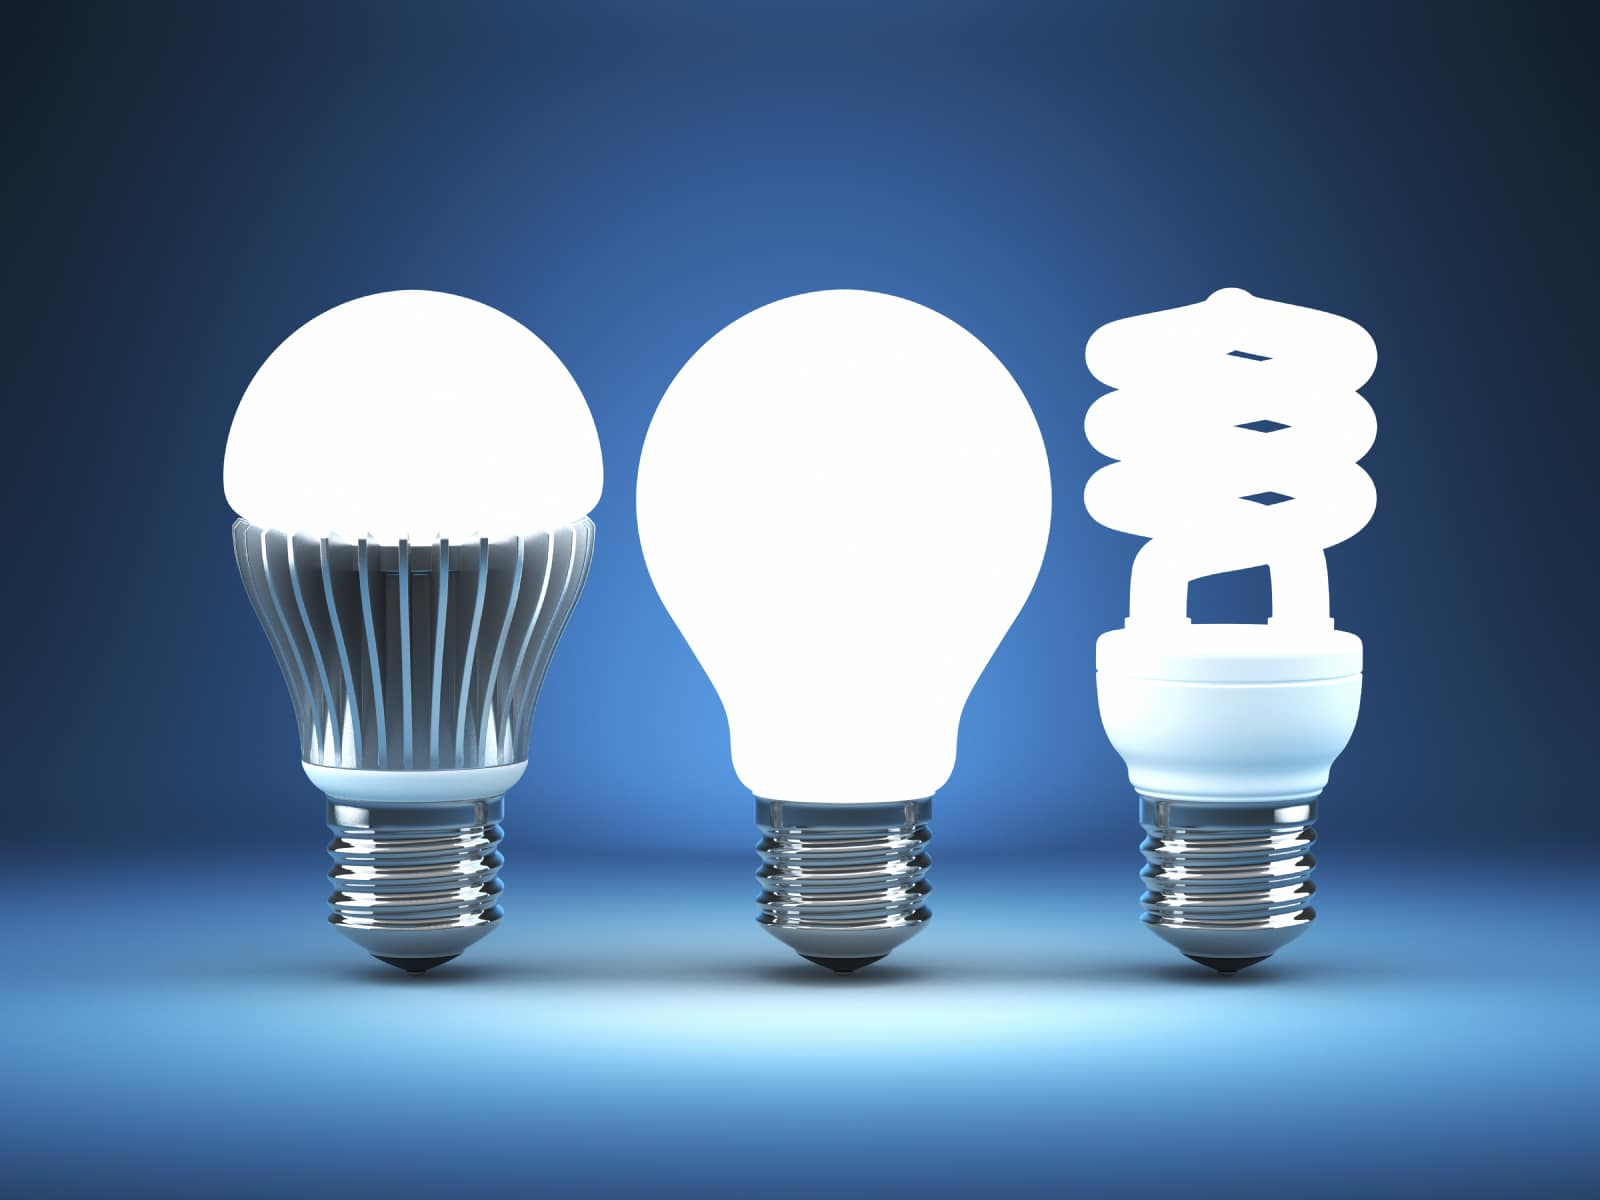 Different styles of LED bulbs